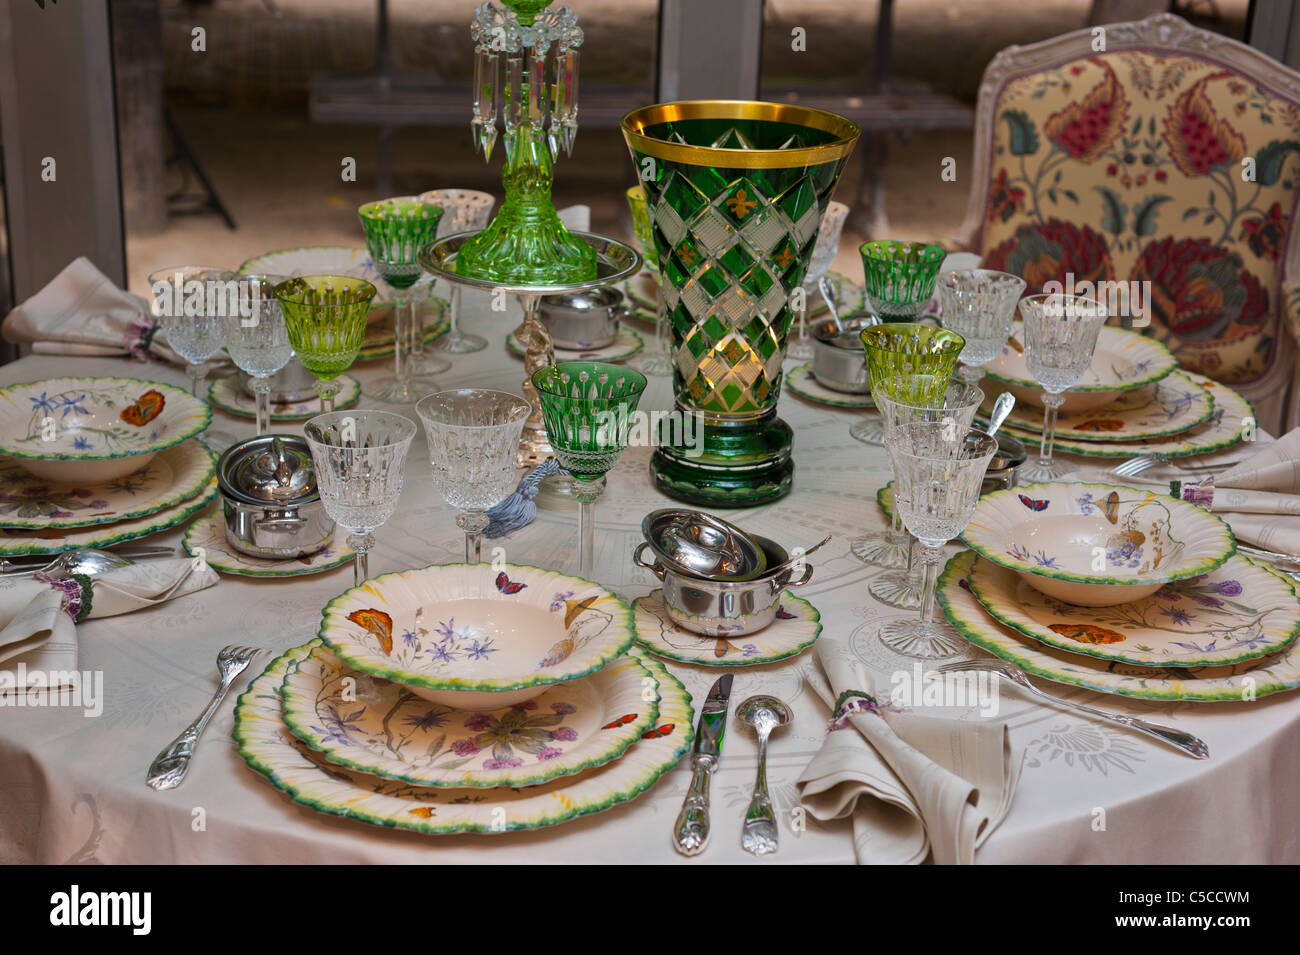 Paris France Luxury French Table Setting Lorraine  Terre de Luxe  (Collection Companies) & Paris France Luxury French Table Setting Lorraine